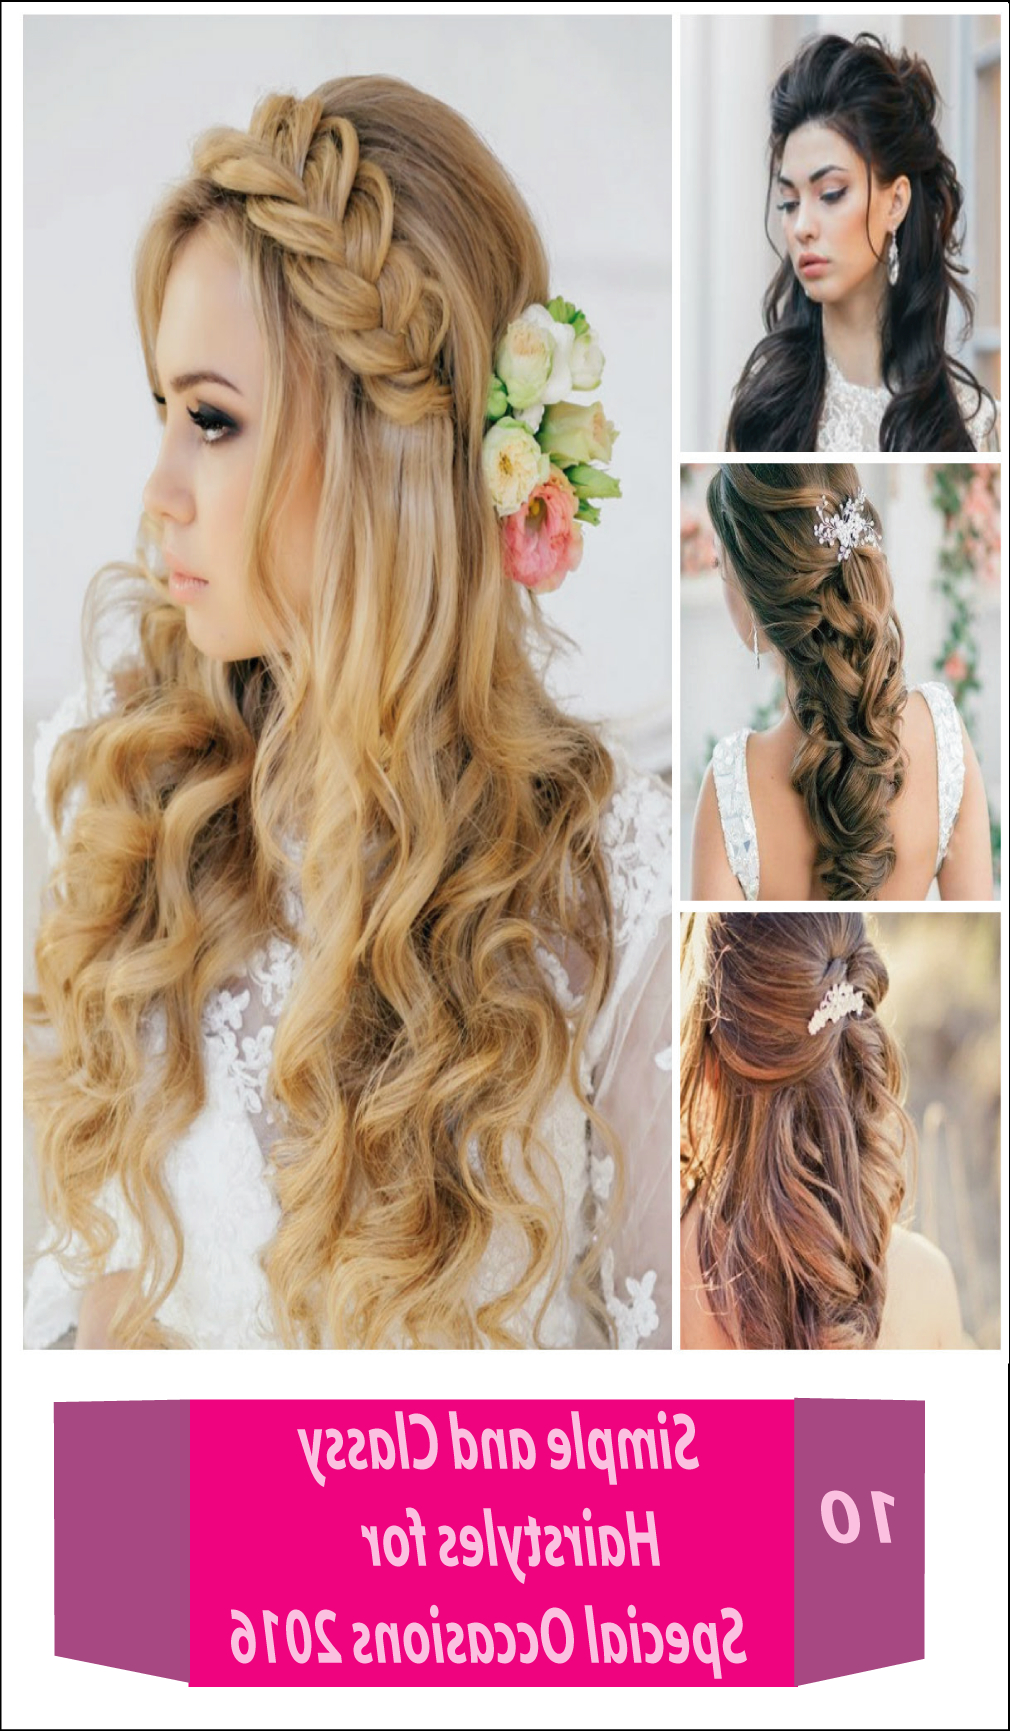 10 Easy And Simple Classy Hairstyles For Special Occasions Pertaining To Well Known Medium Hairstyles For Special Occasions (Gallery 6 of 20)